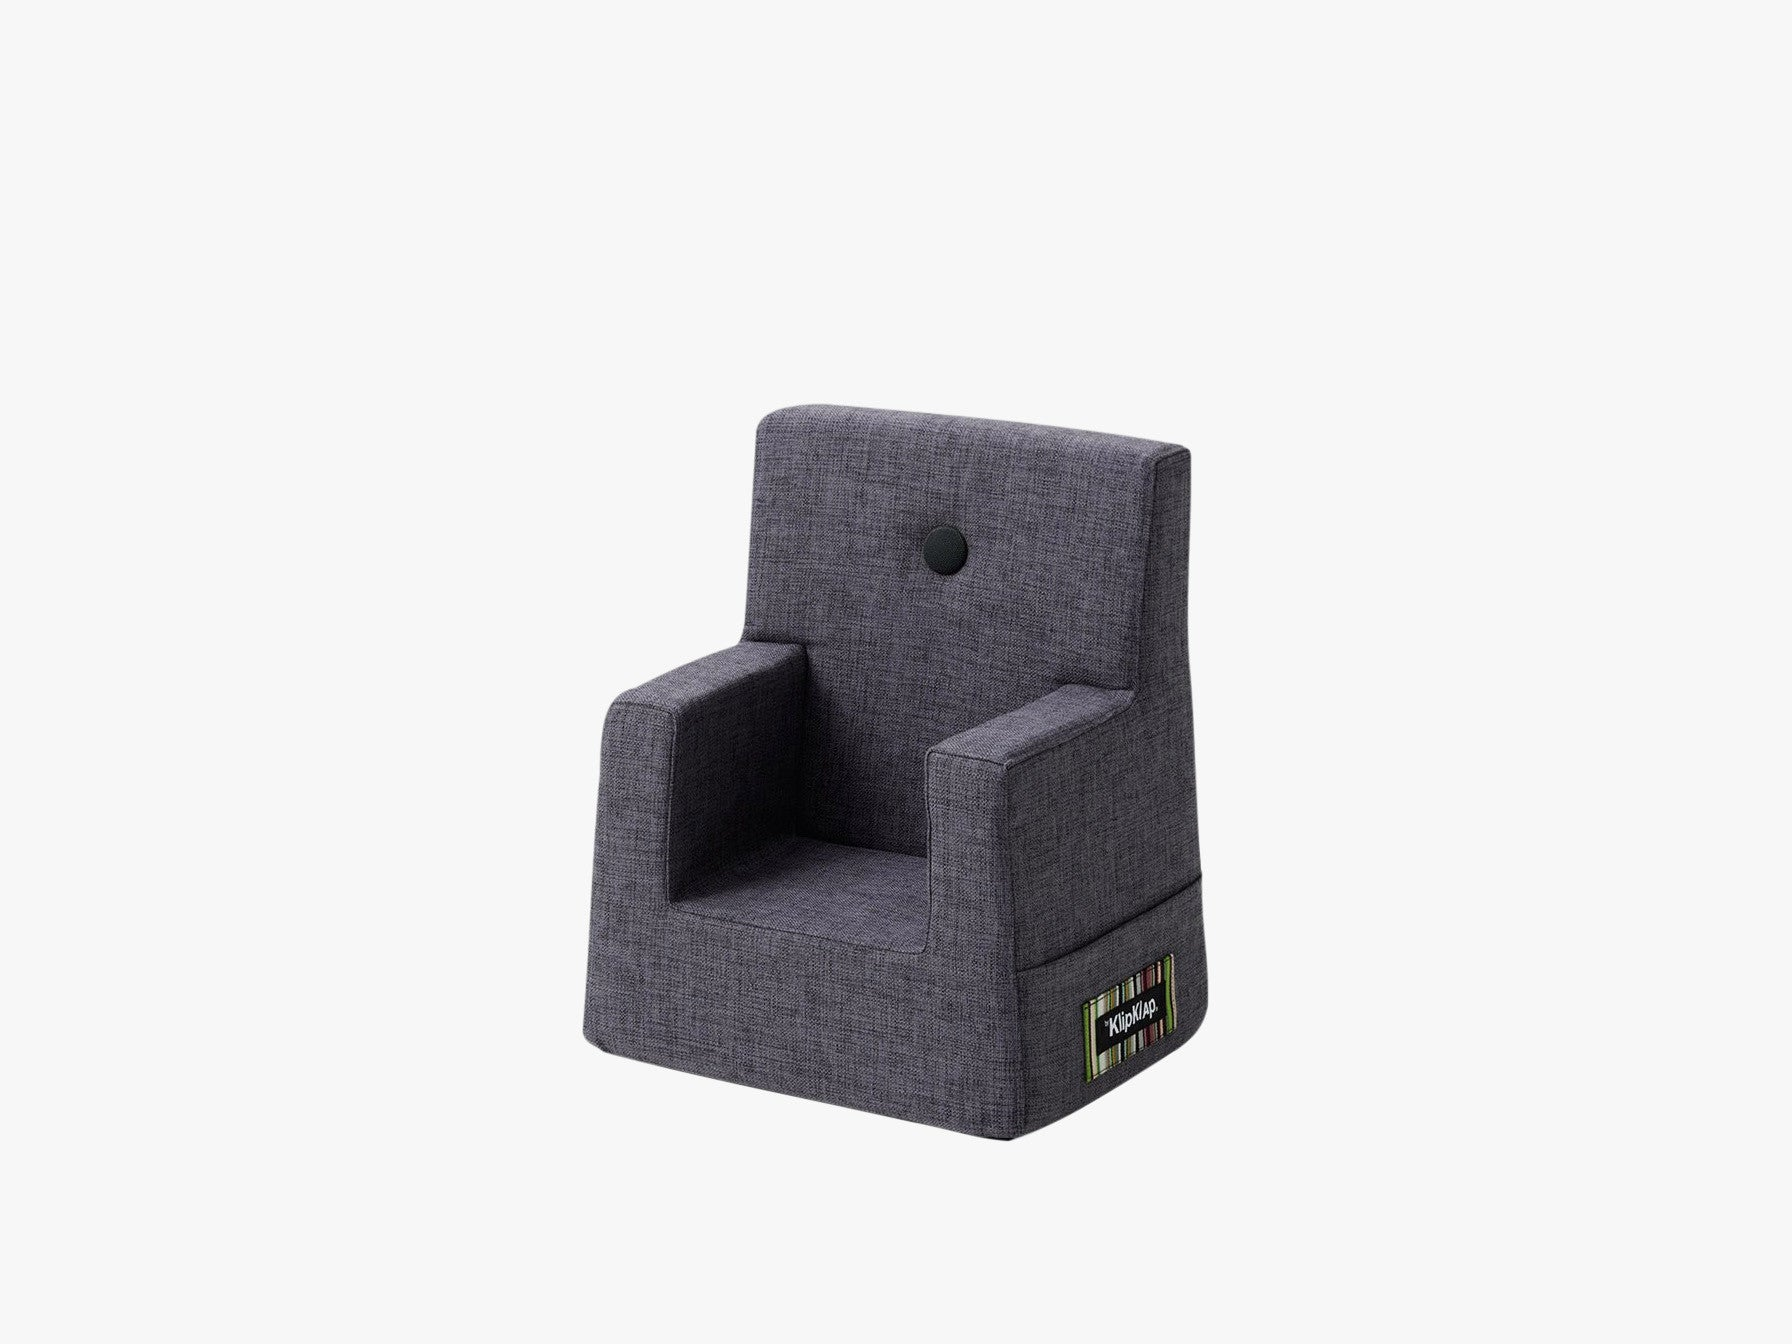 KK Kids Chair, Blågrå m. Grå fra By KlipKlap